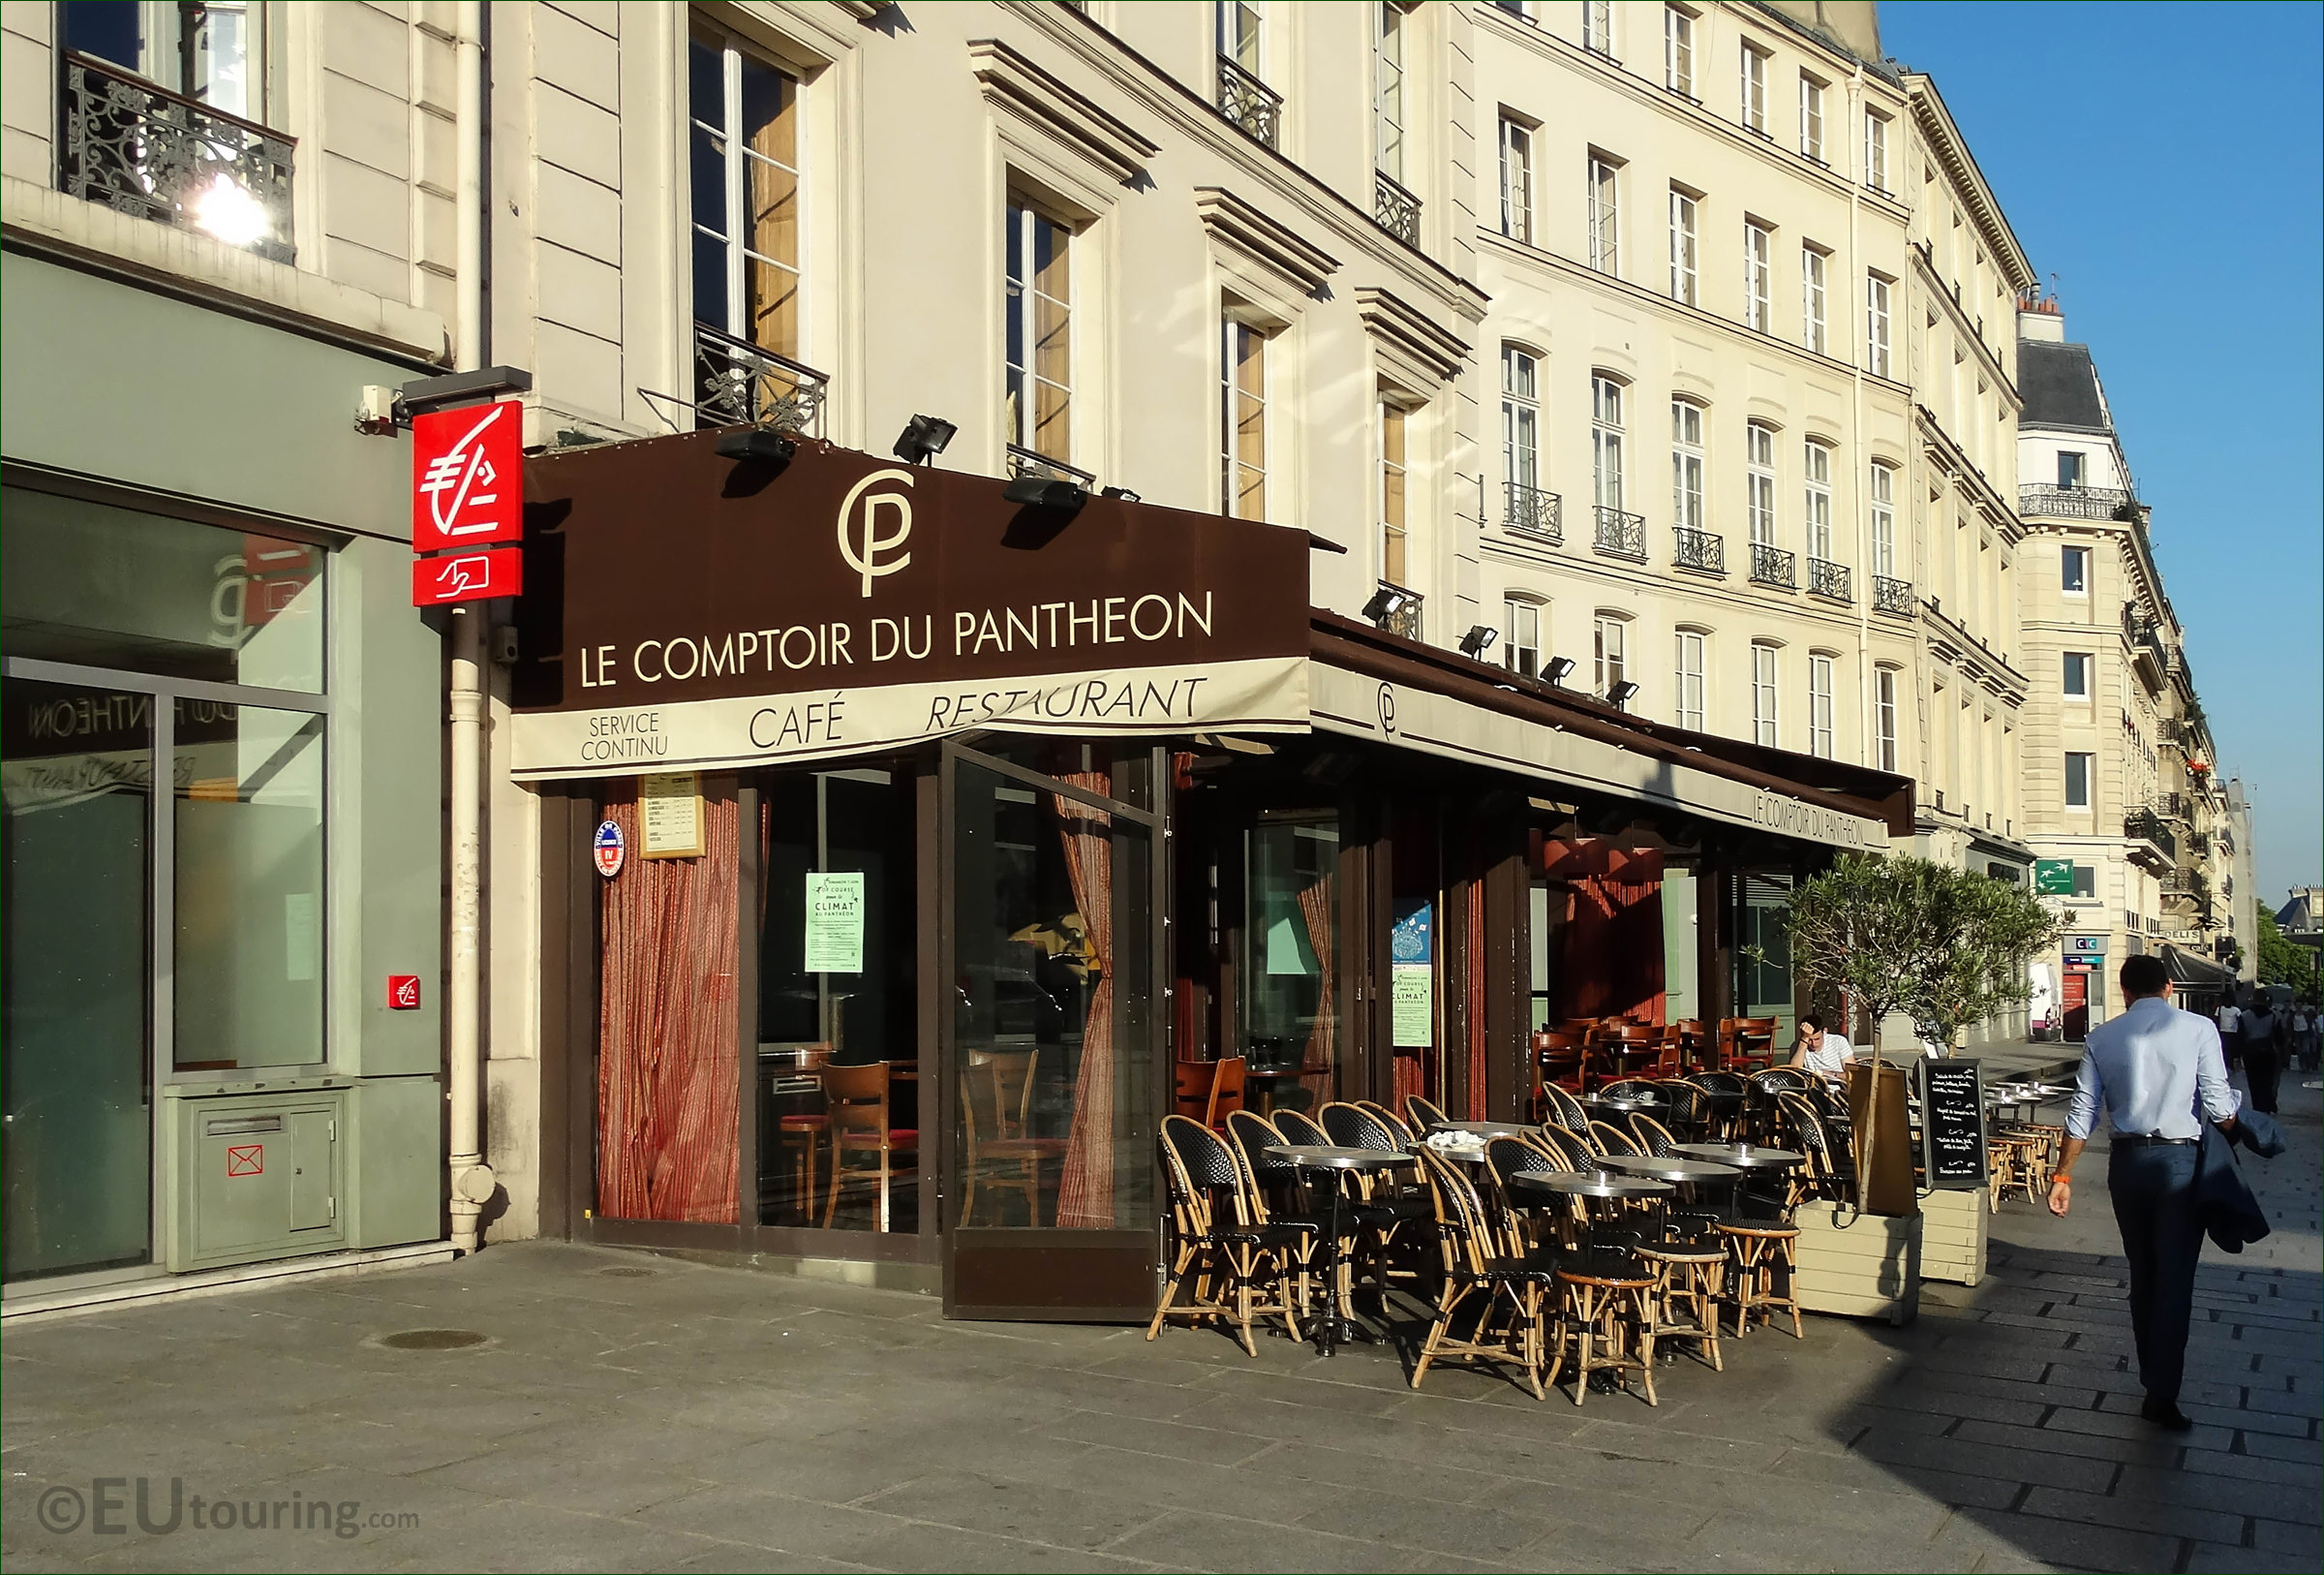 Photos of le comptoir du pantheon restaurant in paris - Le comptoir paris restaurant ...